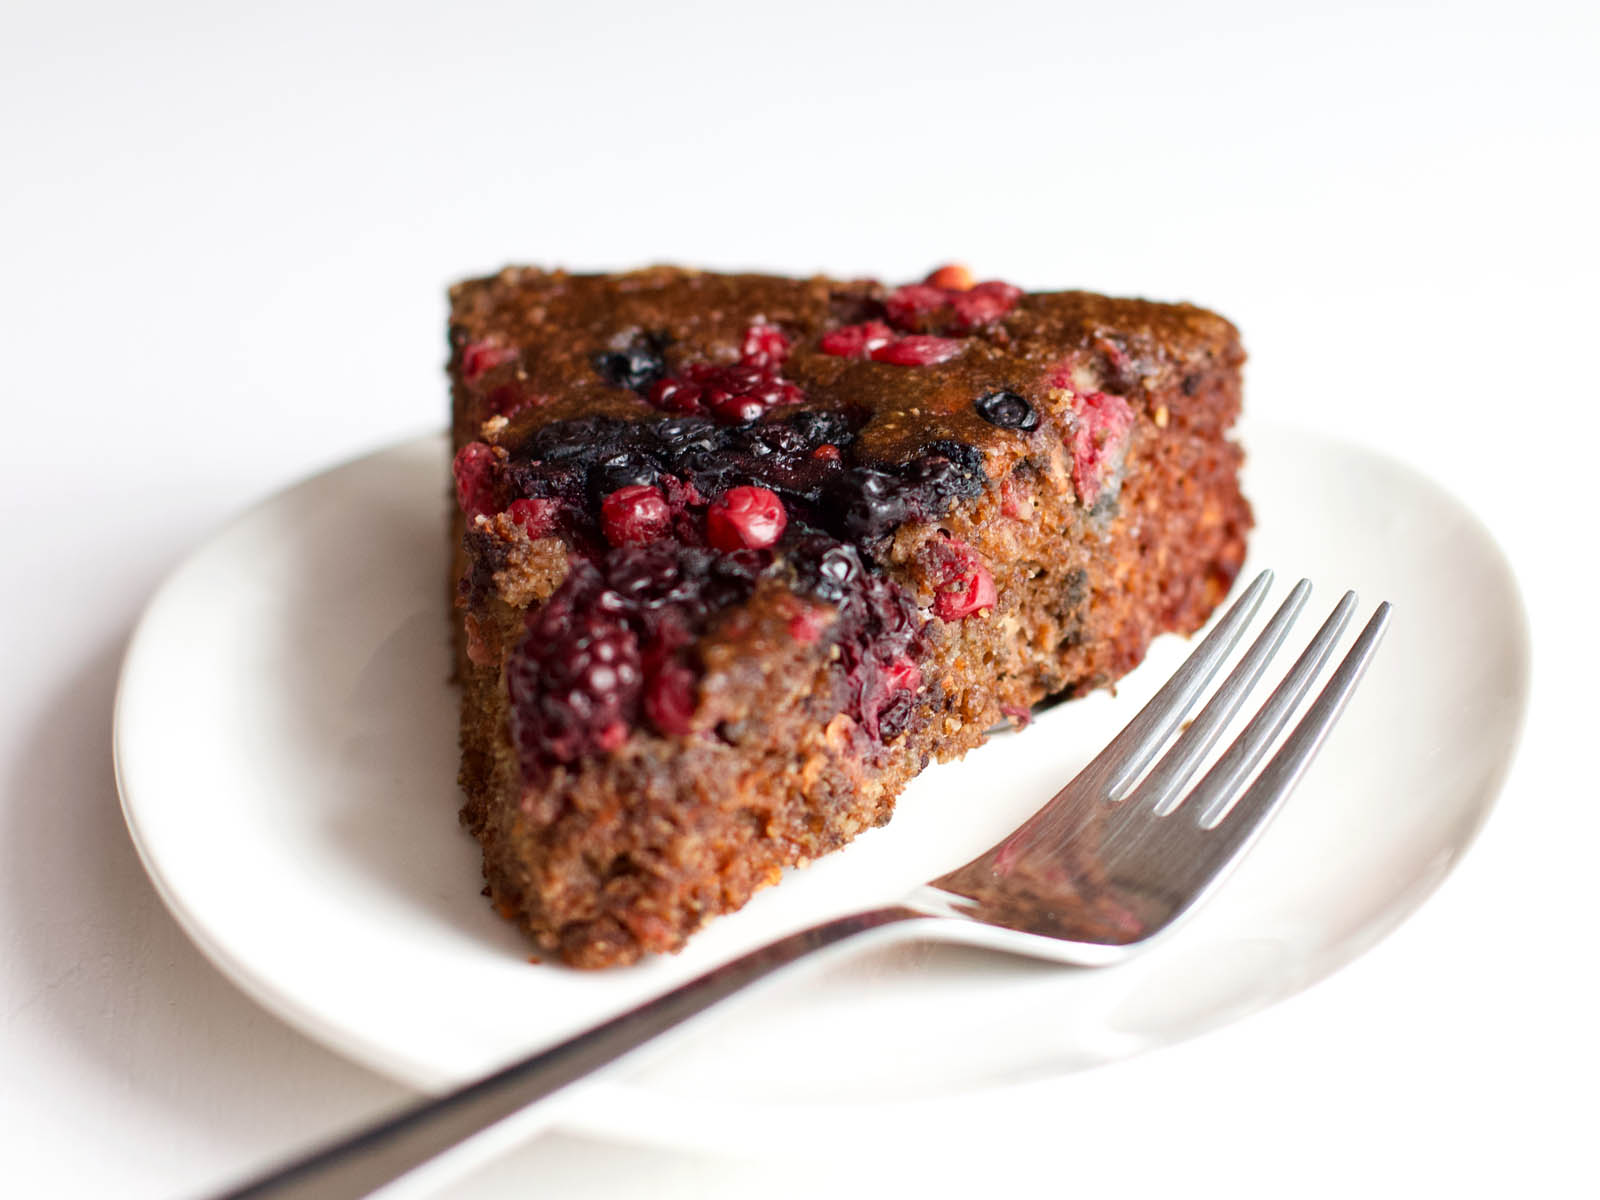 Single slice of Low-Carb Chocolate Cake with Berries on a plate, waiting to be consumed.